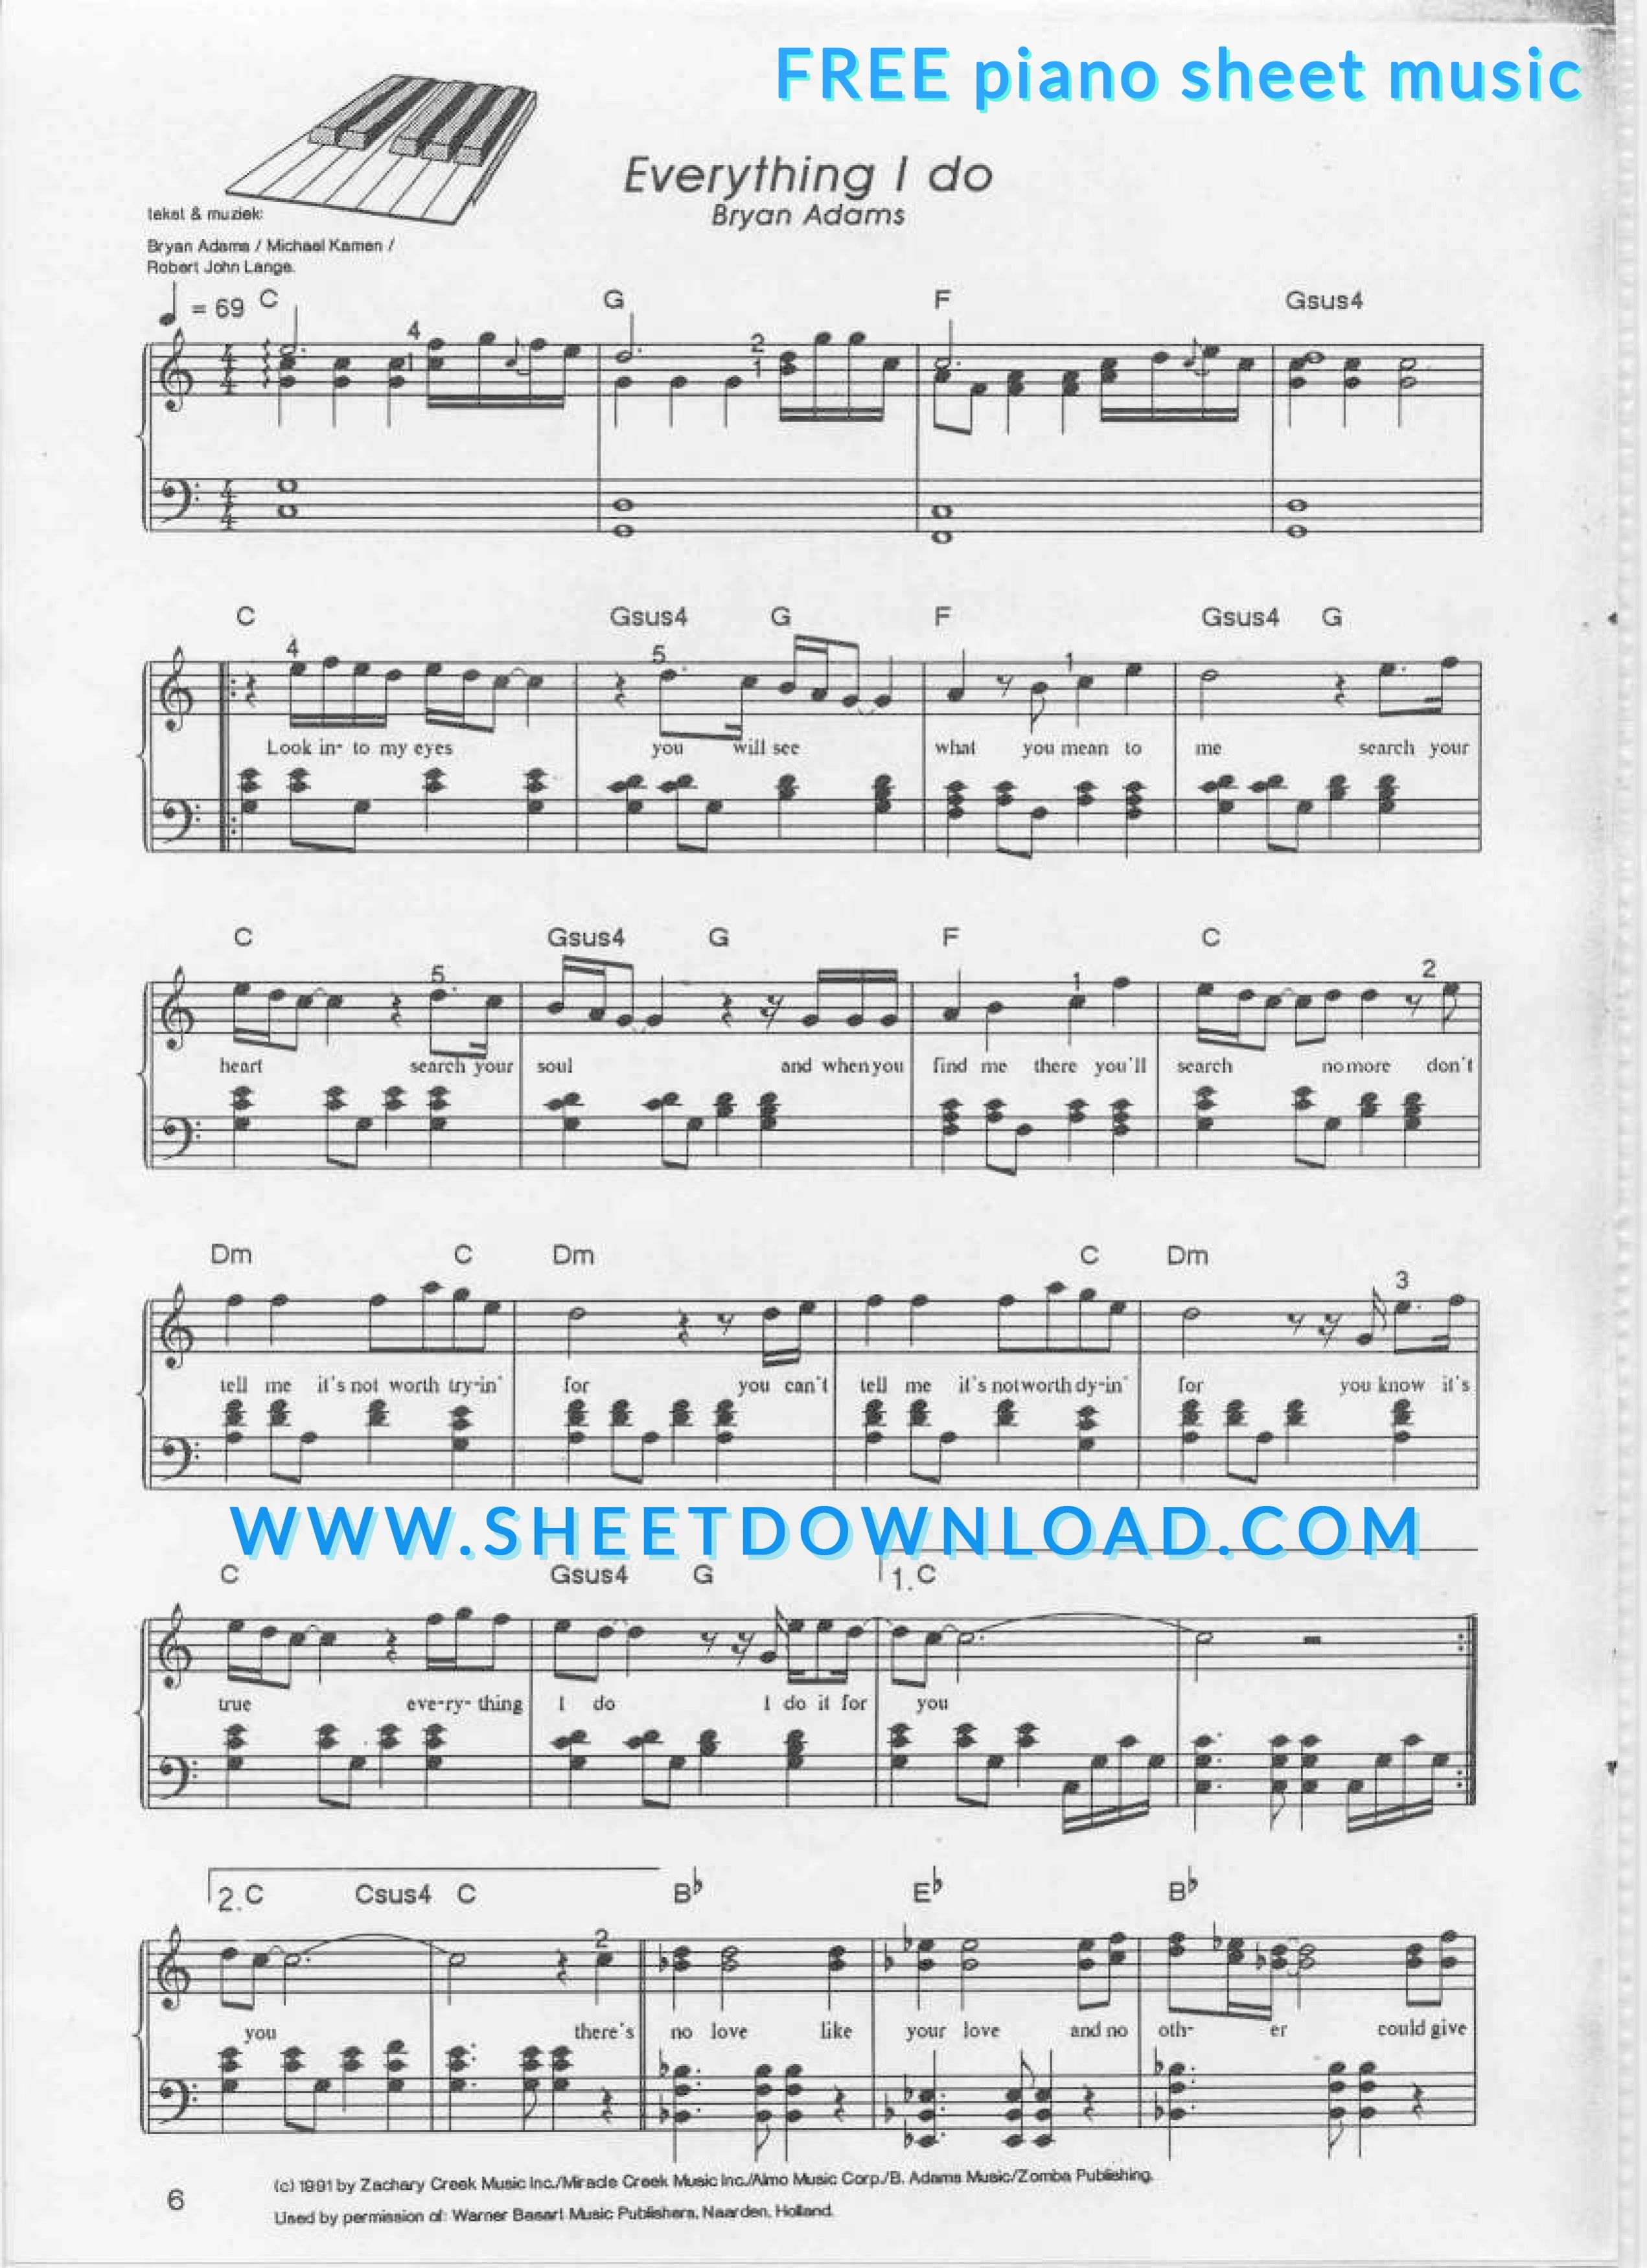 View, download and print Everything I Do piano sheet music